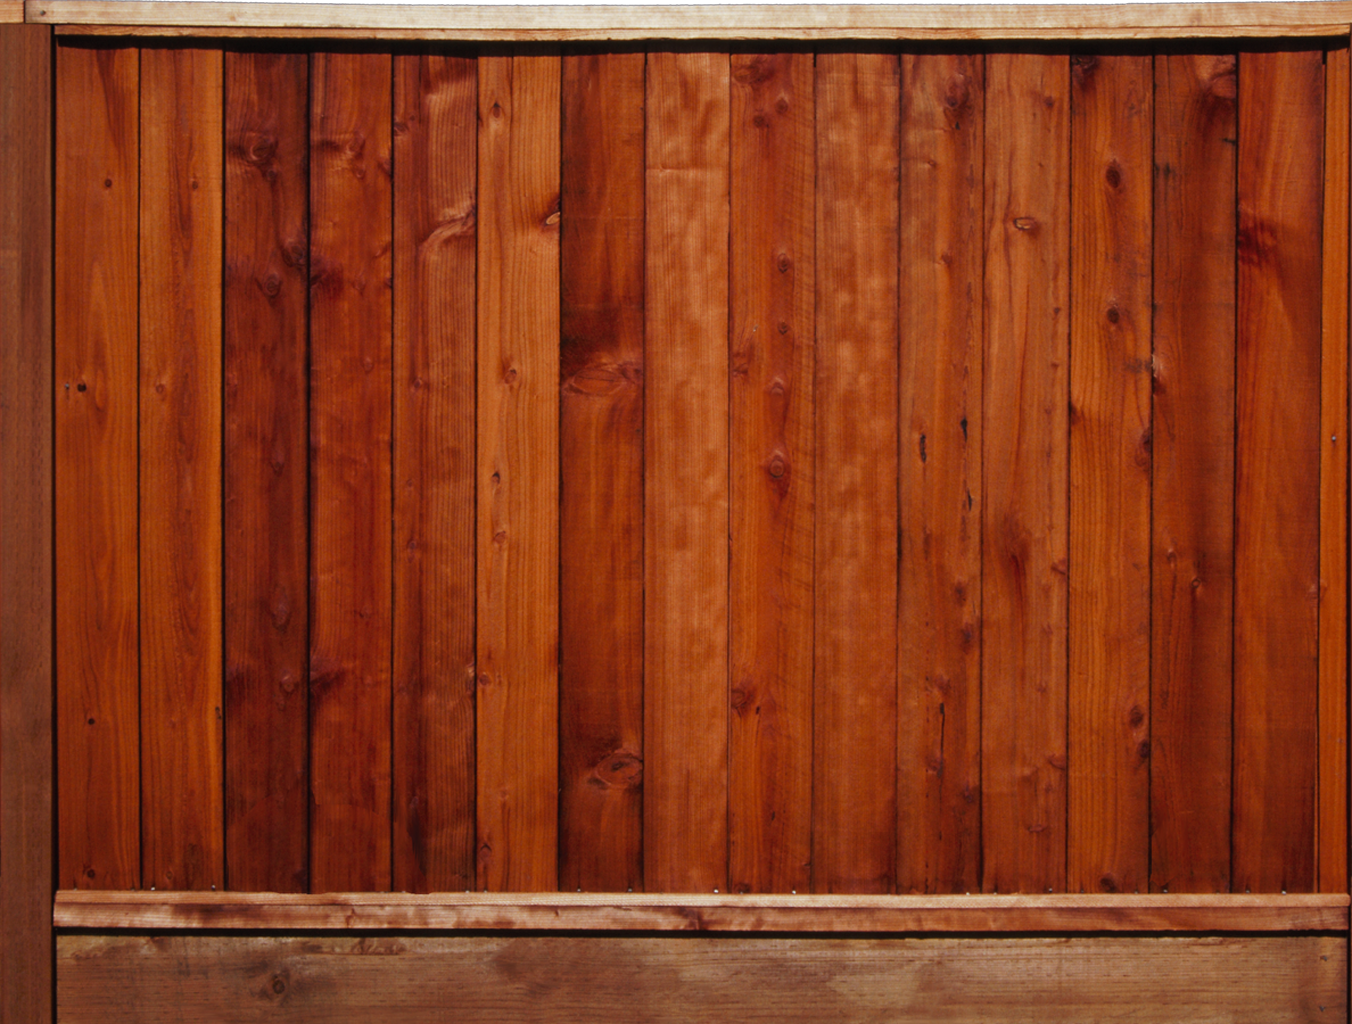 Free download Wood Fence 3D Textures Pack with Transparent